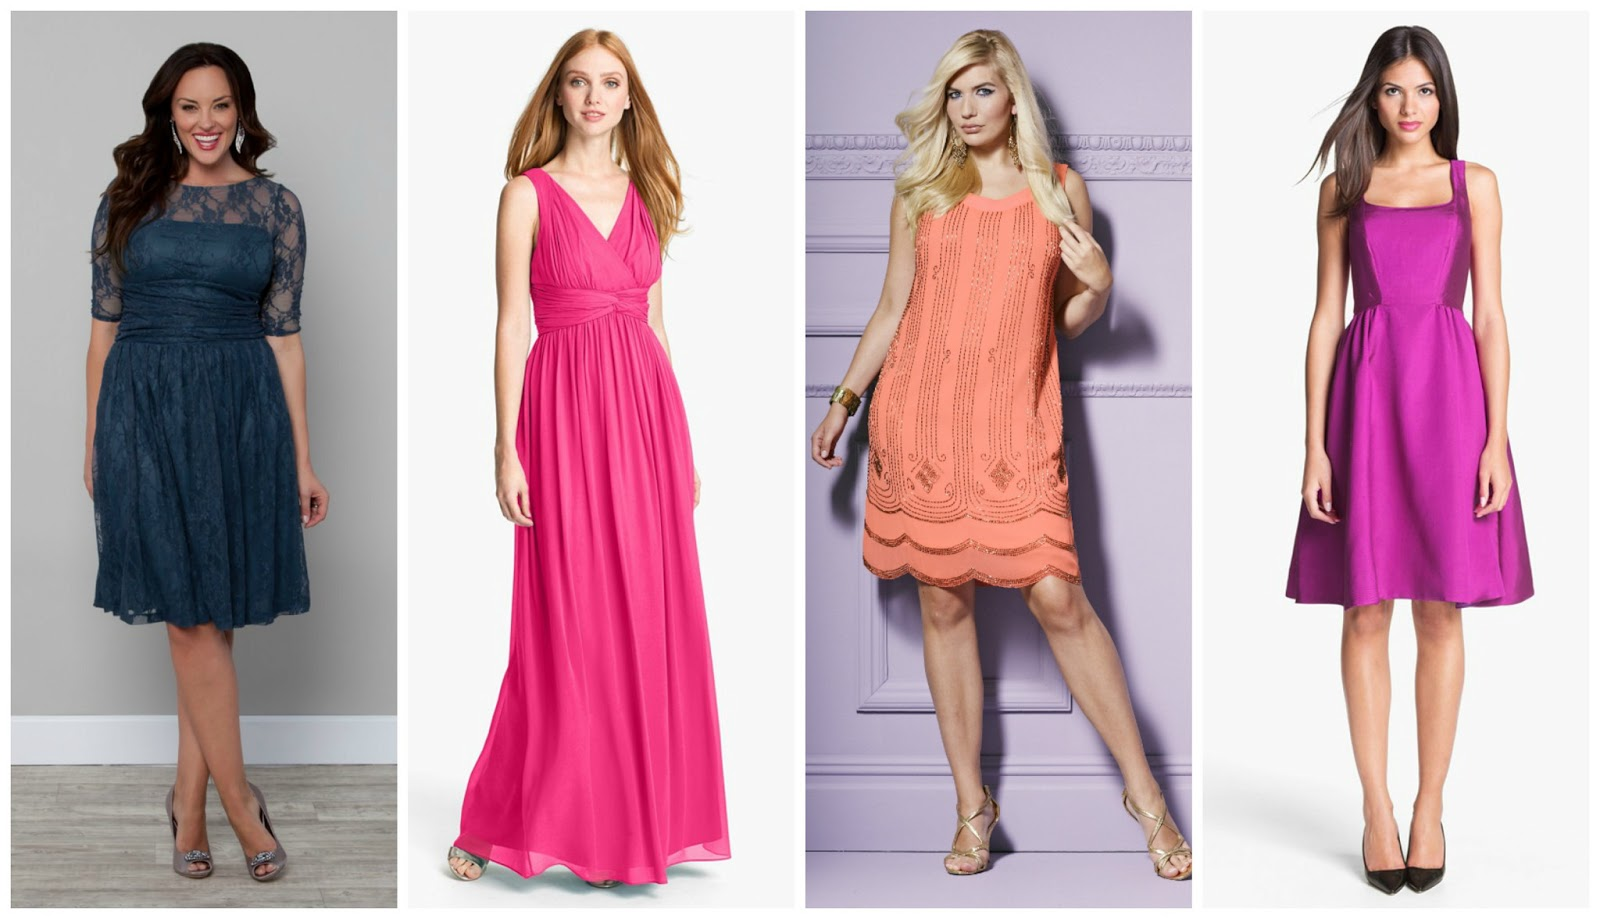 Dress for wedding guest summer 2014 2015 fashion trends for Wedding guest dress 2015